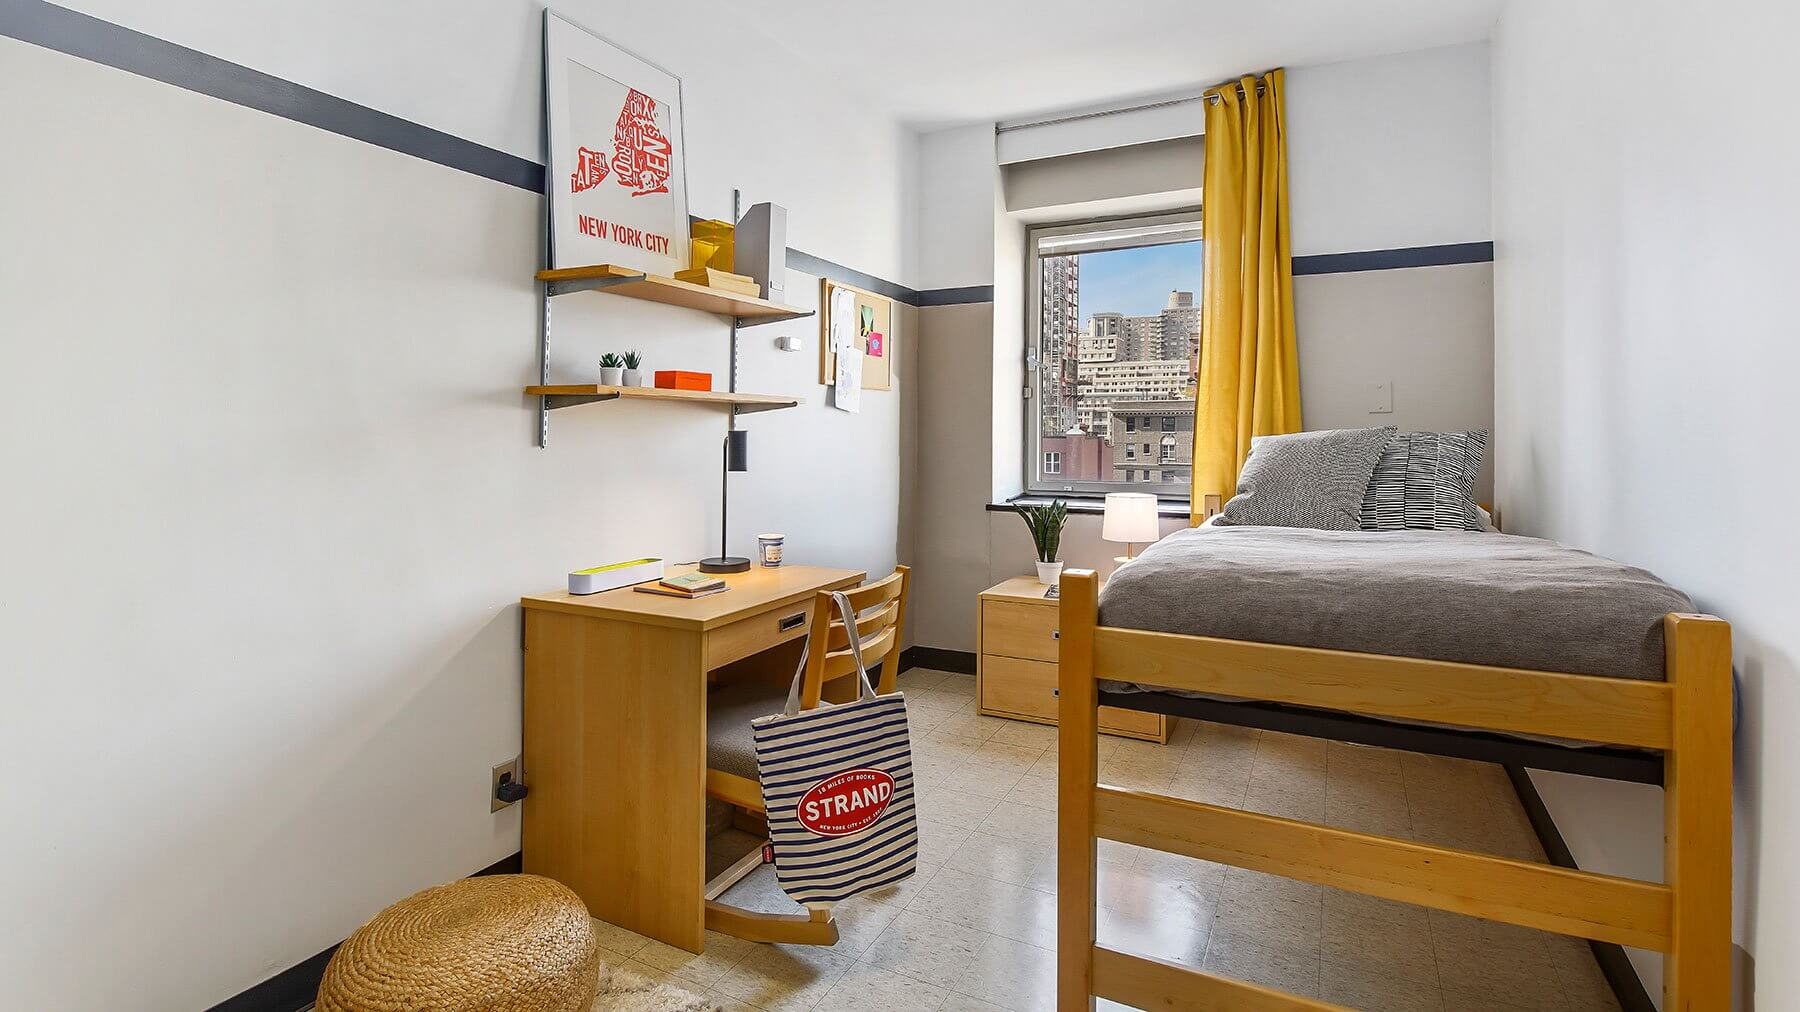 East-92nd-street_NYC-Student-housing